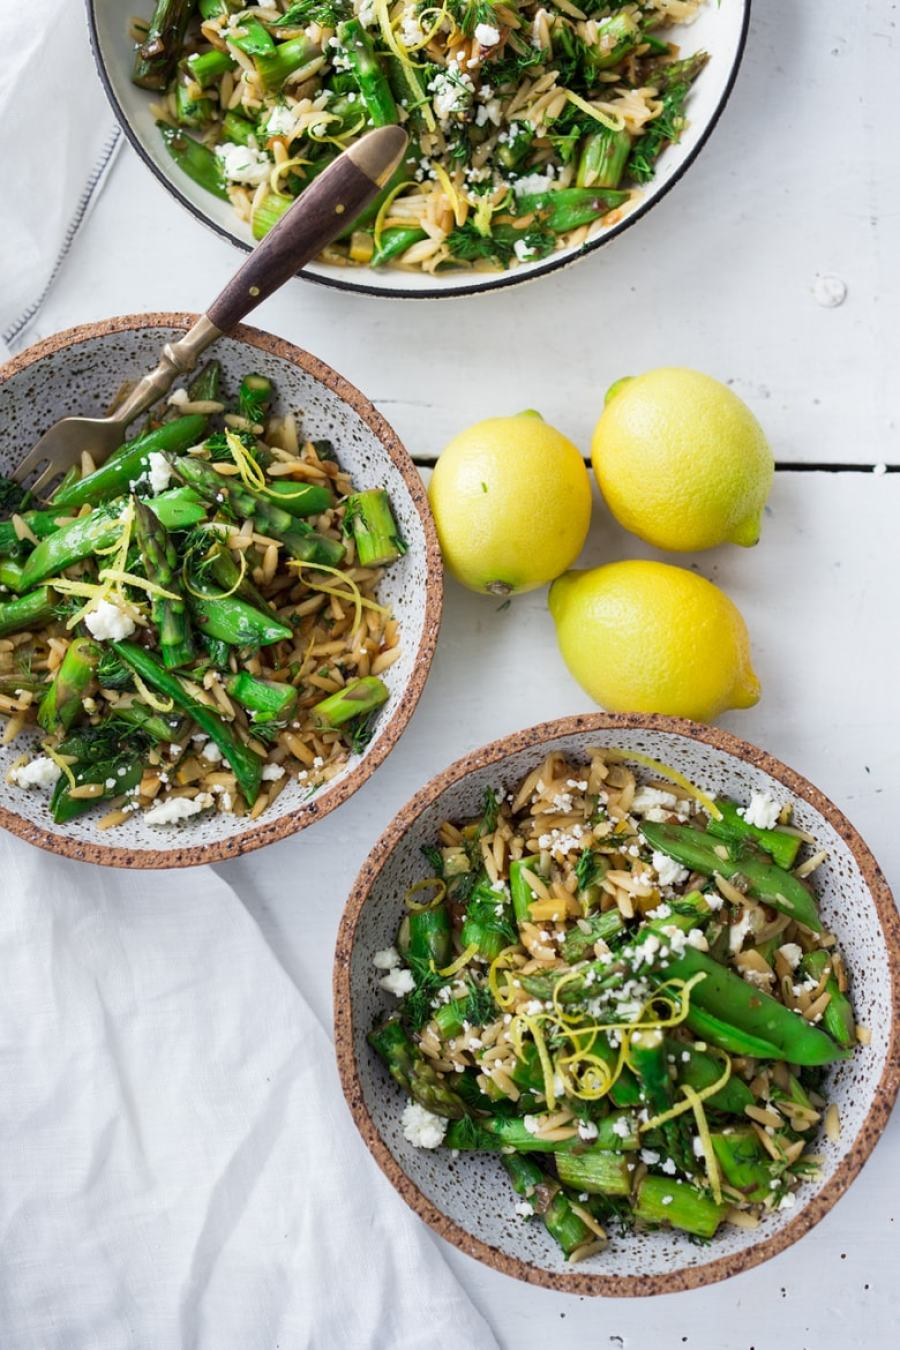 12 Delicious Spring Recipes to celebrate the season! Spring Orzo Pasta with Asparagus, lemon and dill. Keep it vegan or add feta! | www.featingathome.com